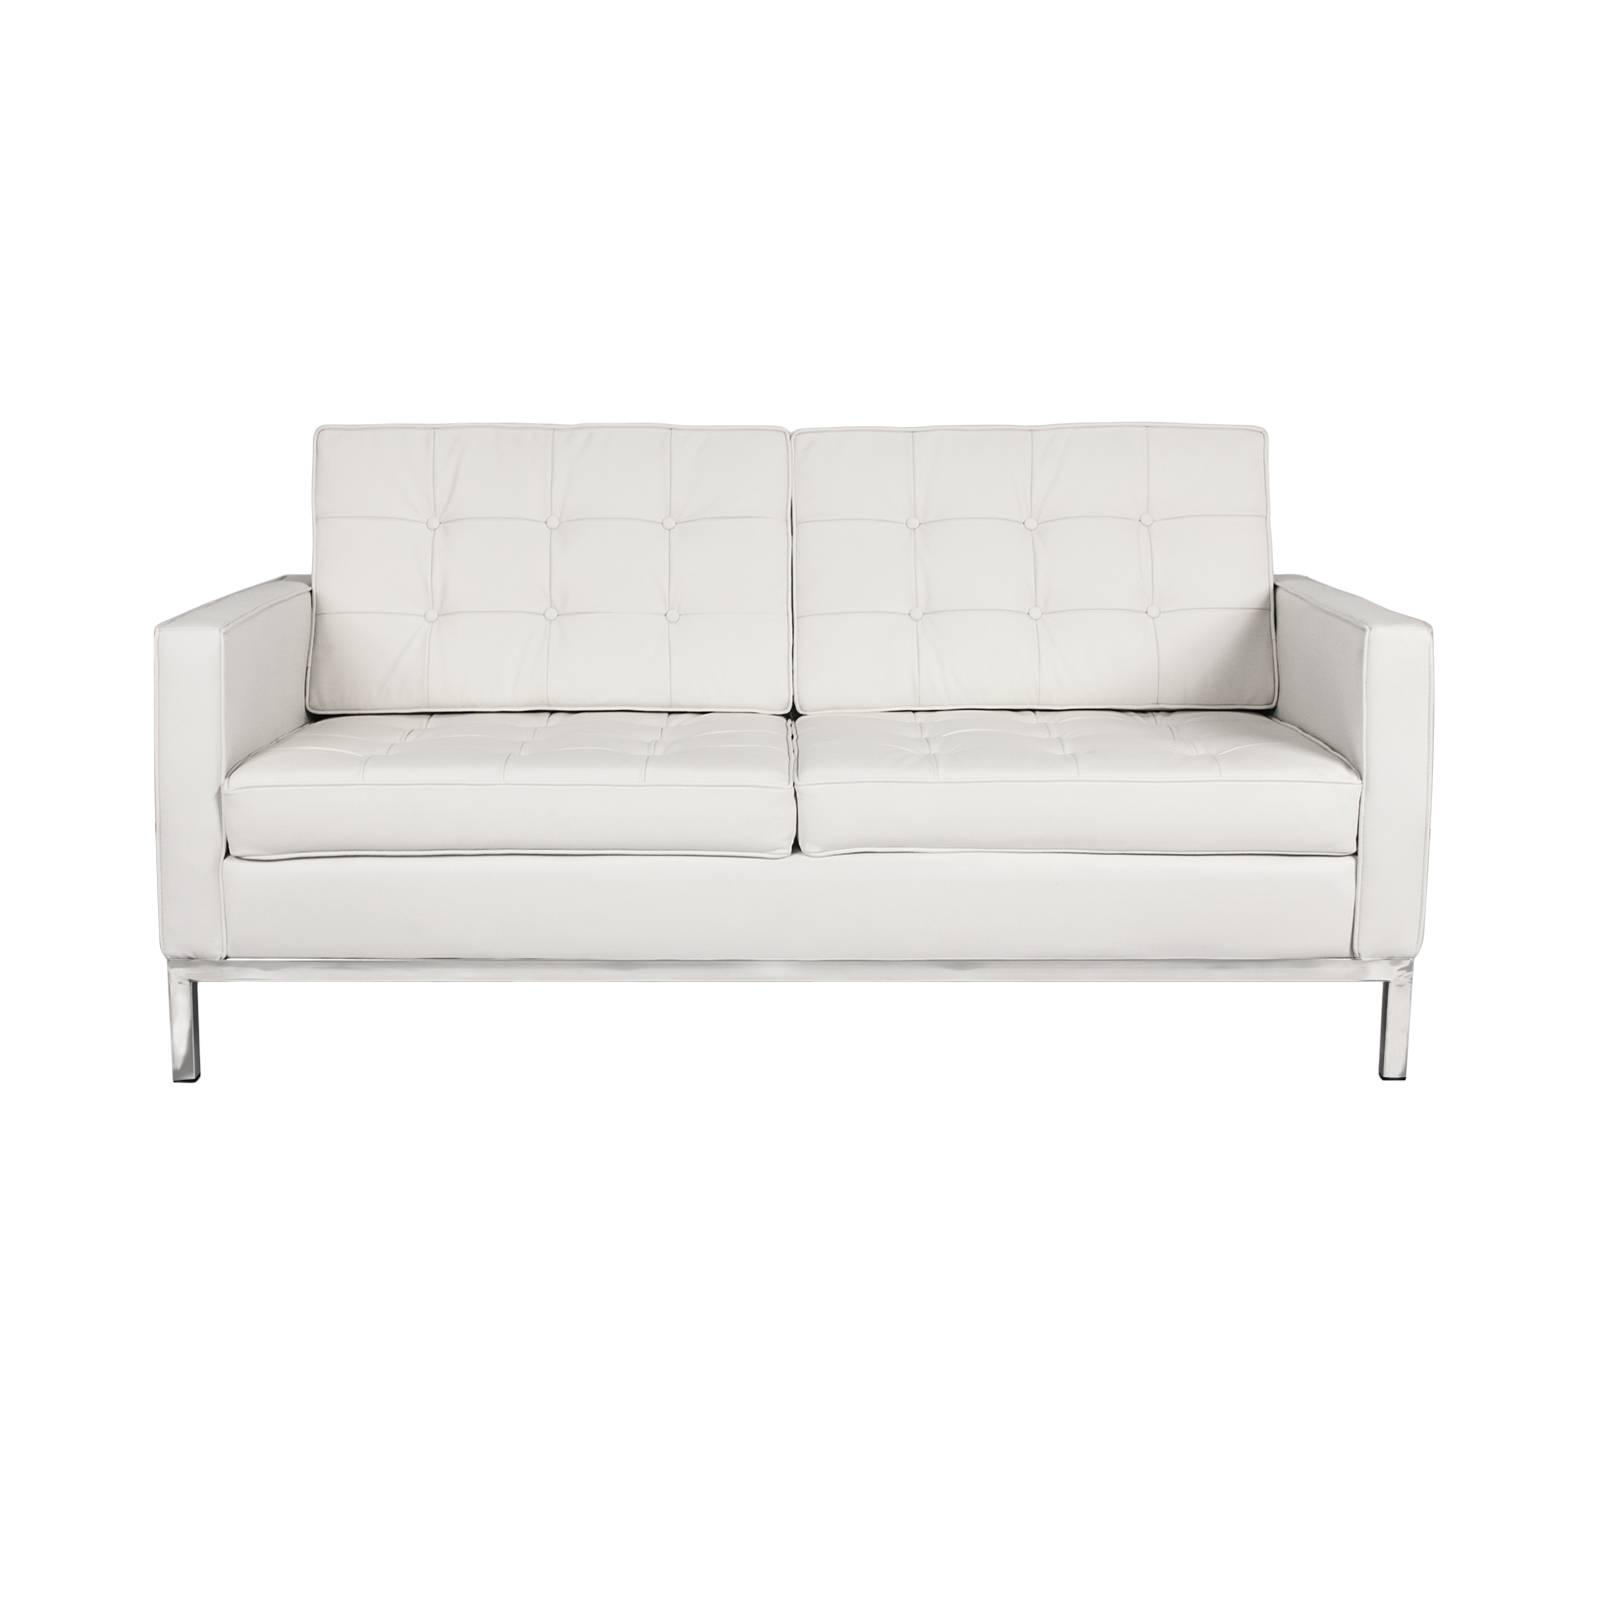 Florence Knoll Loveseat Rentals | Event Furniture Rental with Florence Sofas and Loveseats (Image 4 of 25)